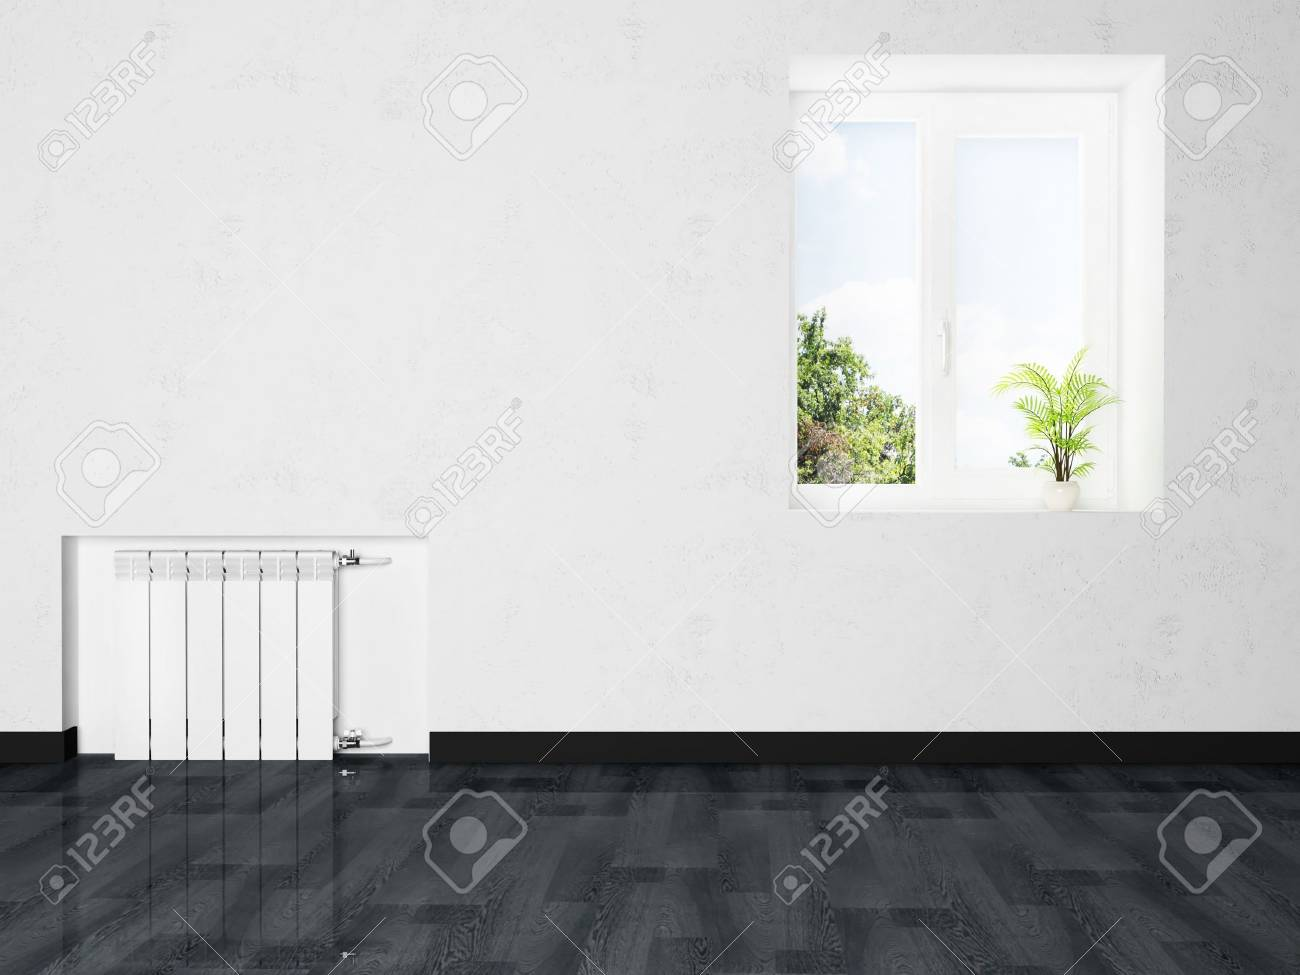 interior design scene with a radiator and a window Stock Photo - 15305535